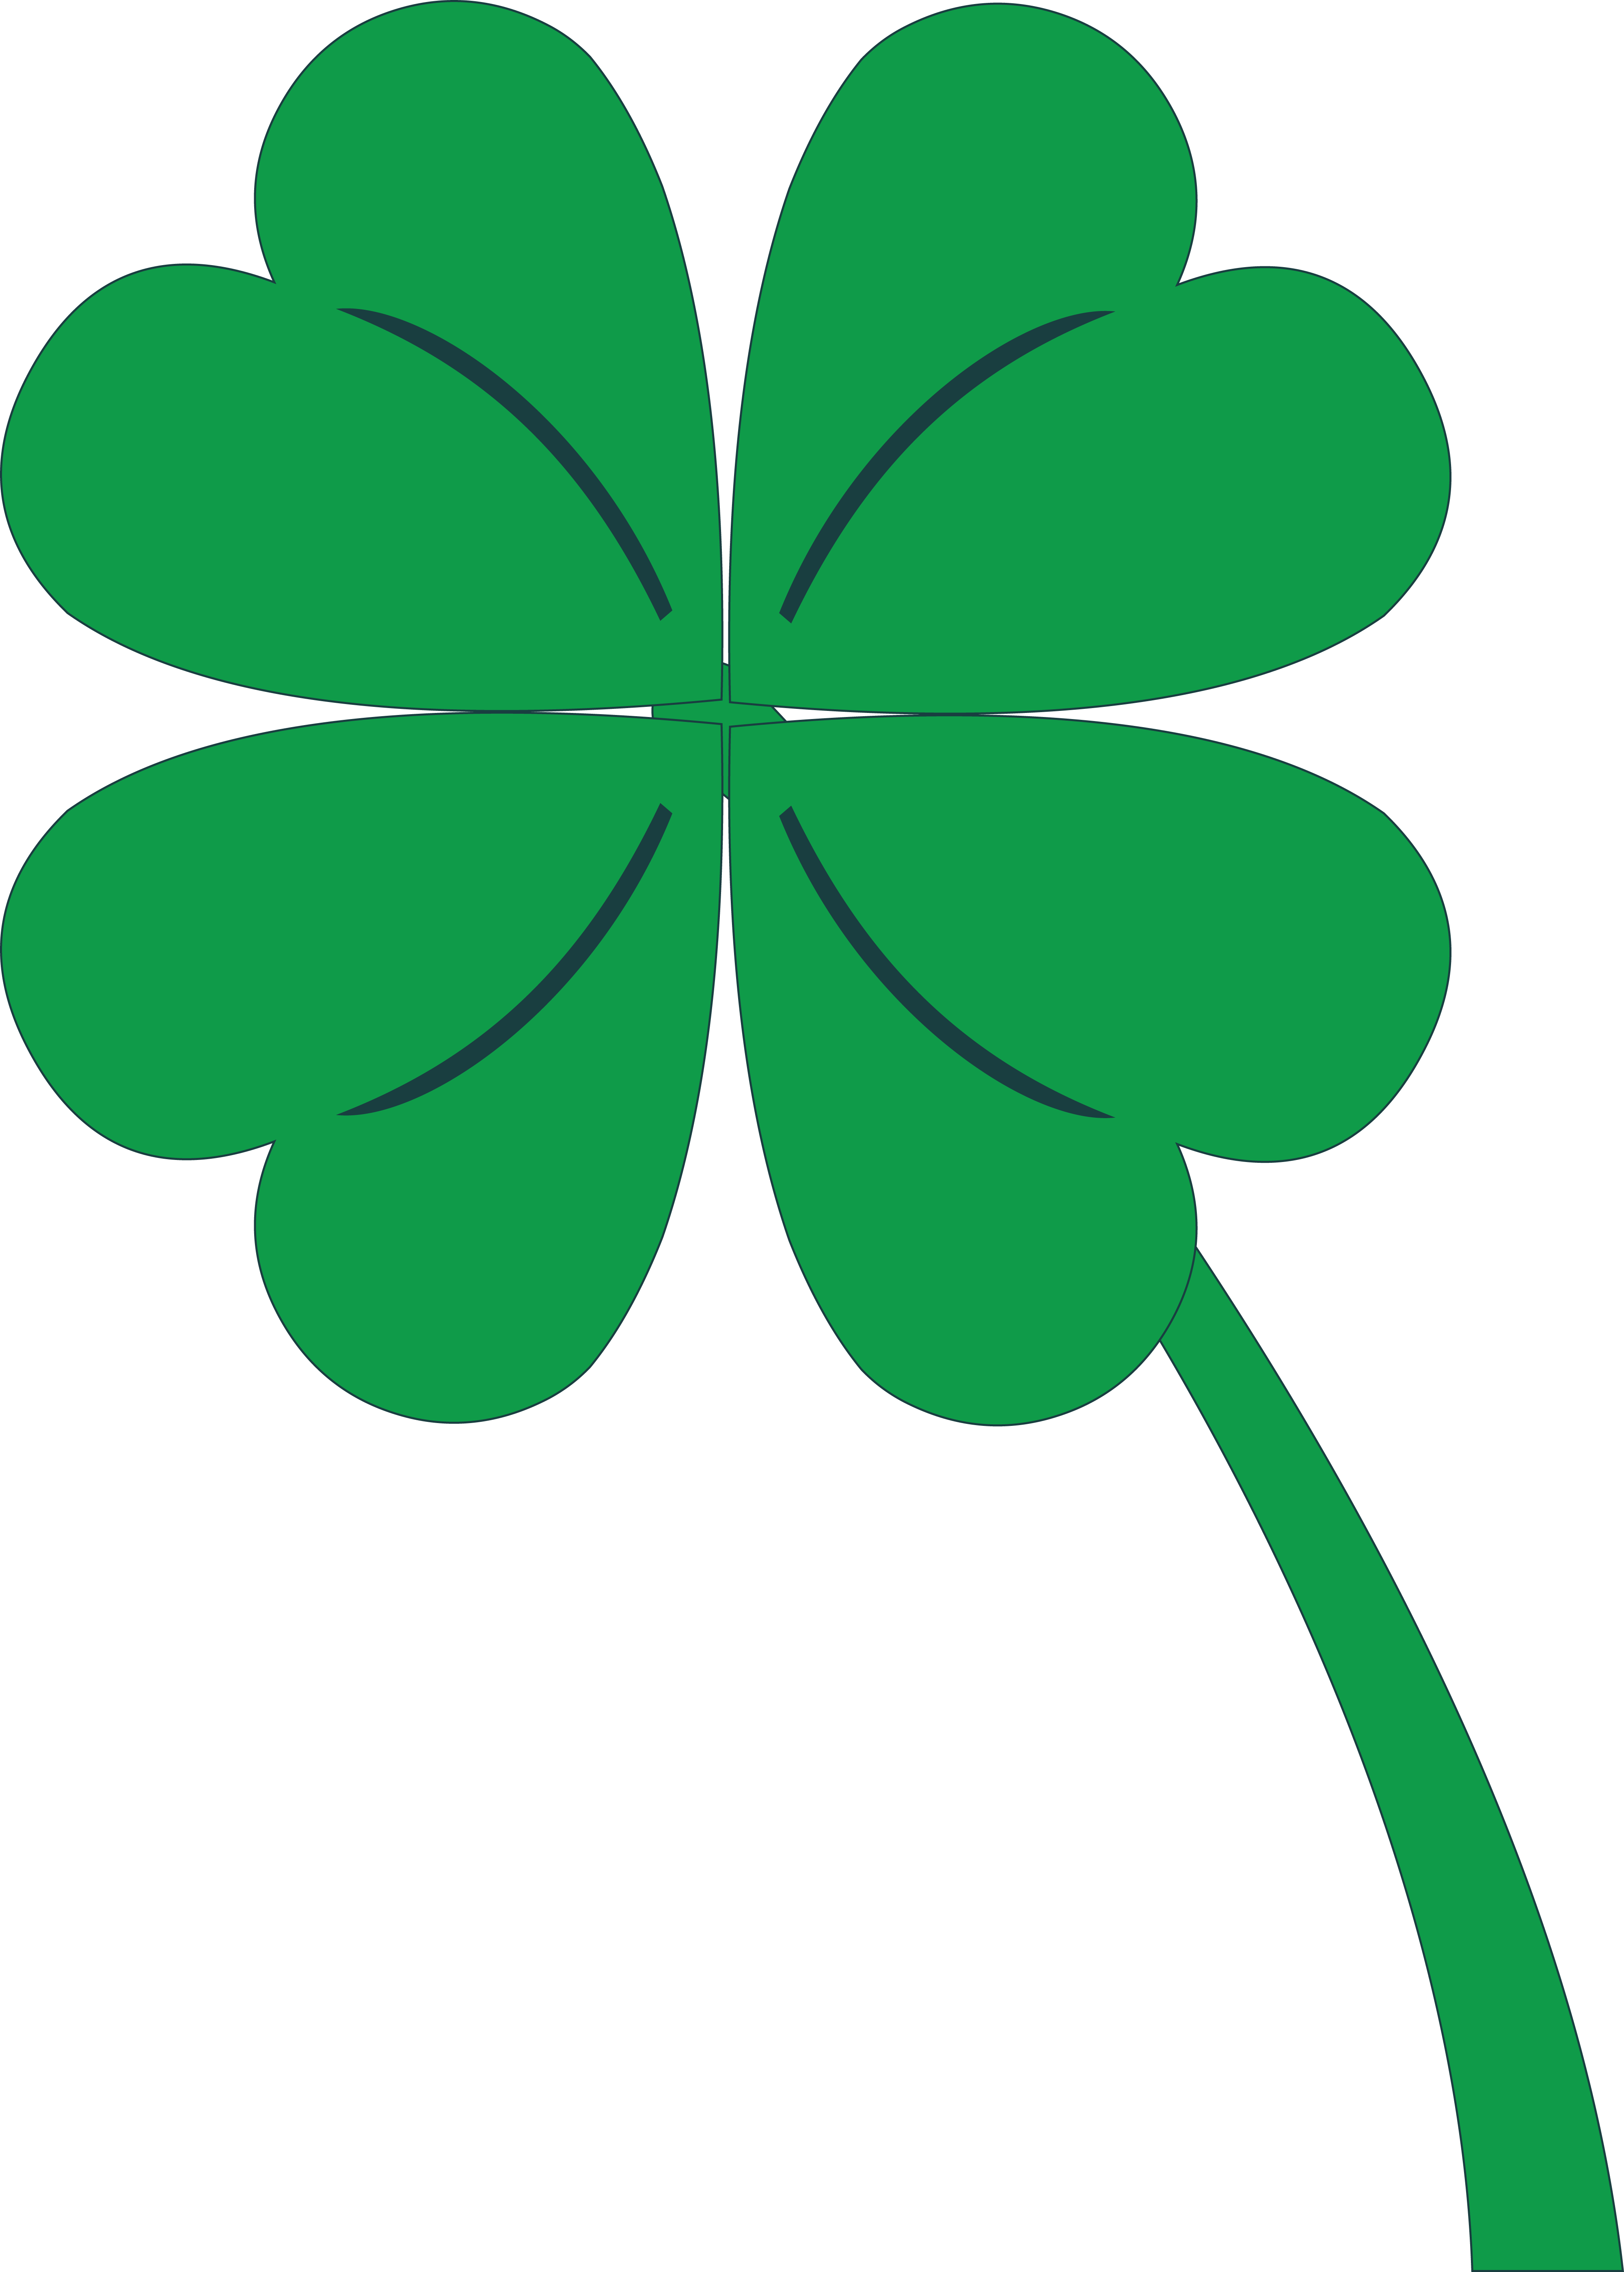 image about Printable 4 H Clover named Clover Clipart at  Absolutely free for individual retain the services of